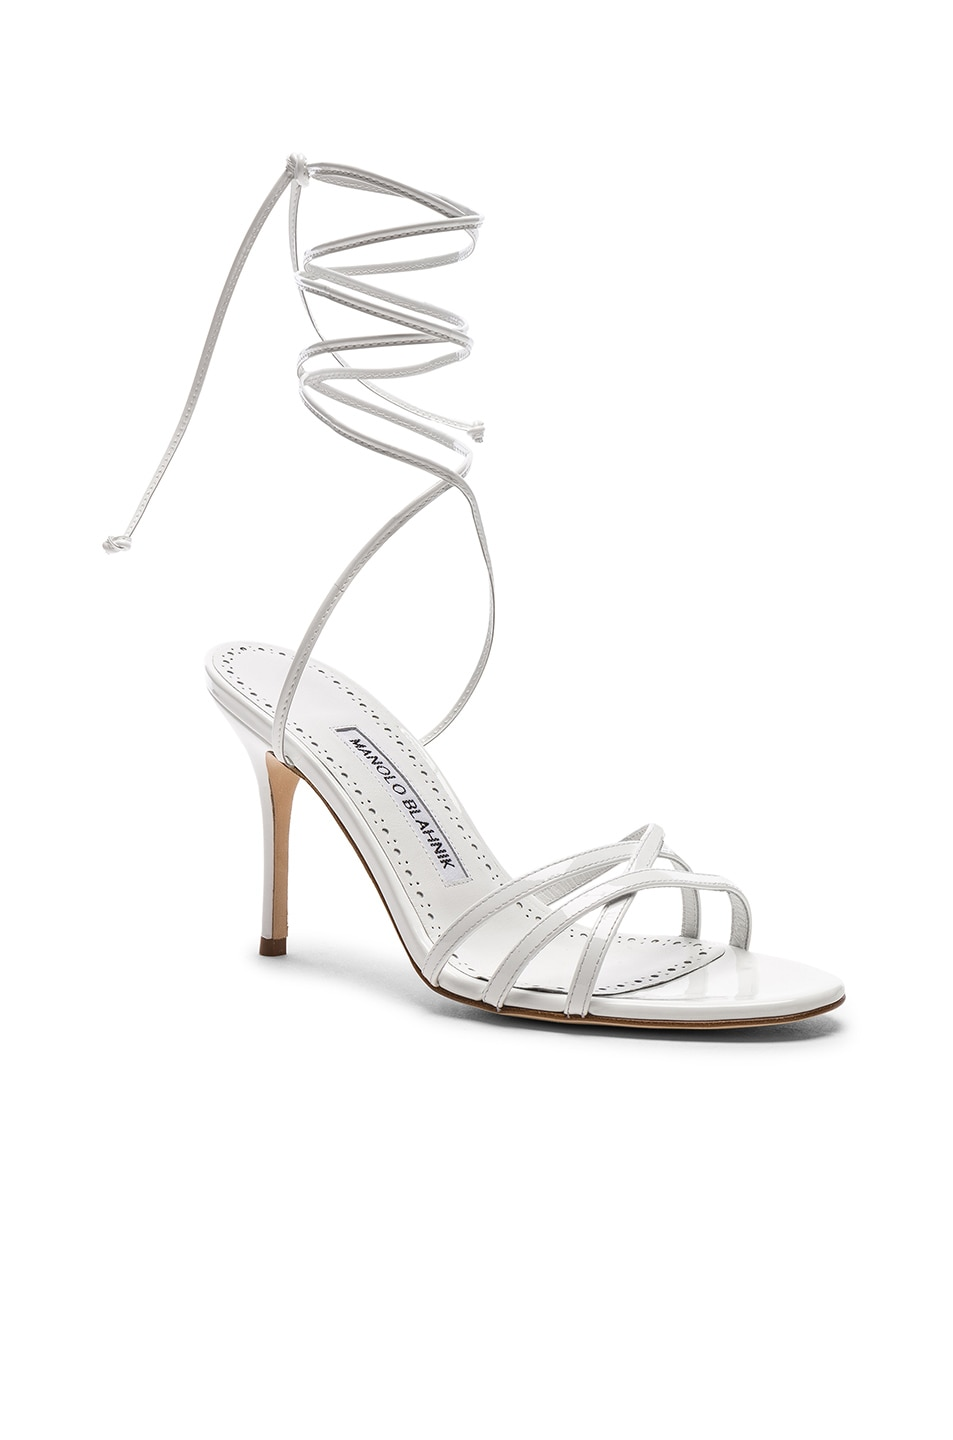 Image 2 of Manolo Blahnik Leva 90 Sandal in White